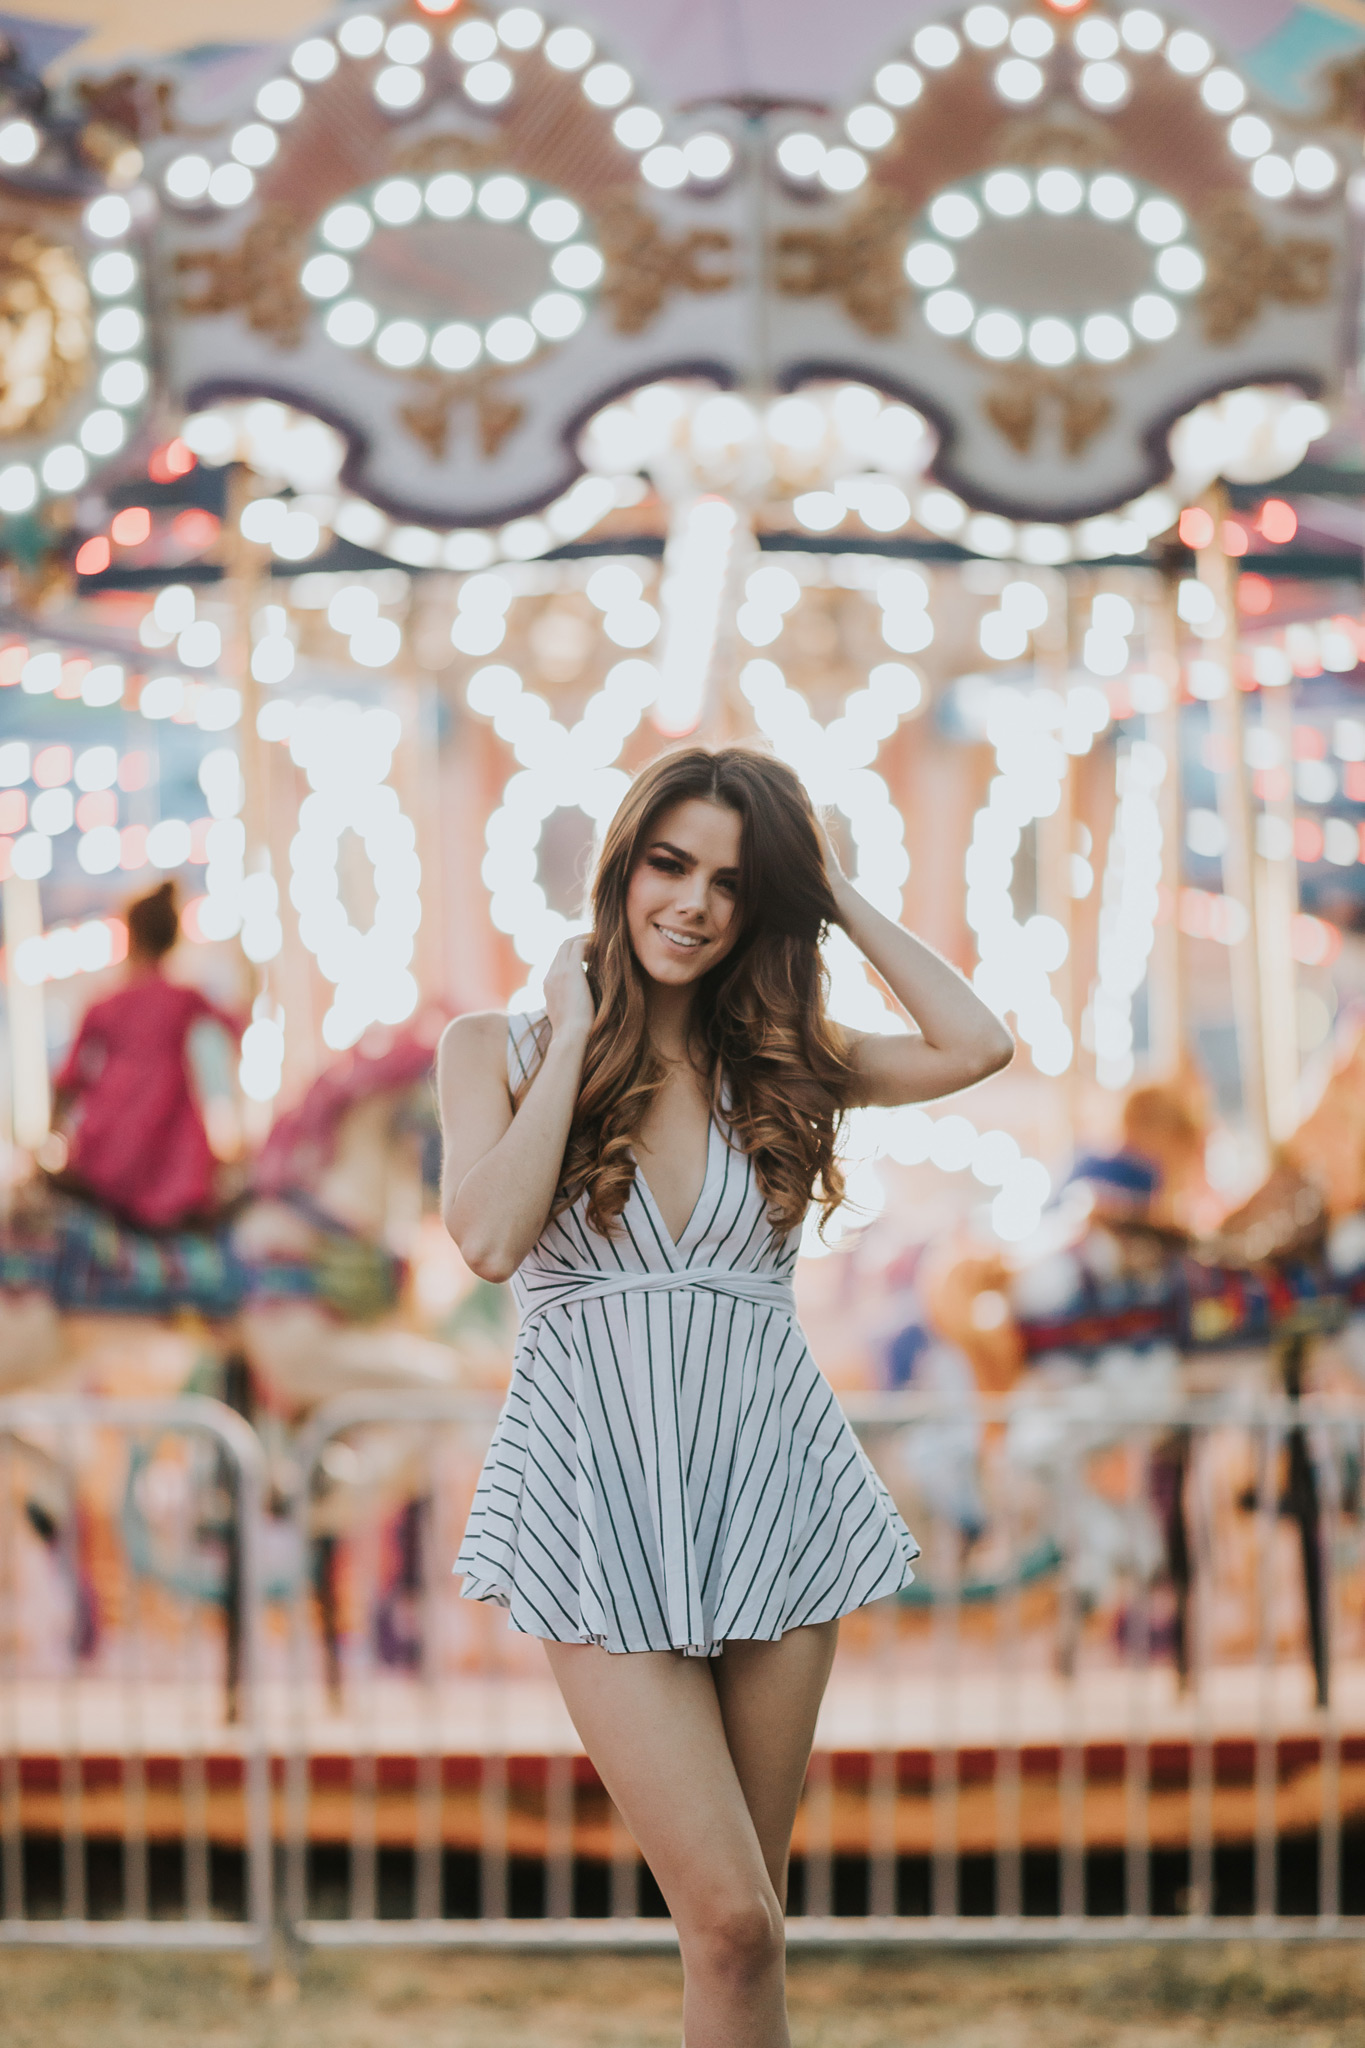 model posing in front of merry-go-round smiling